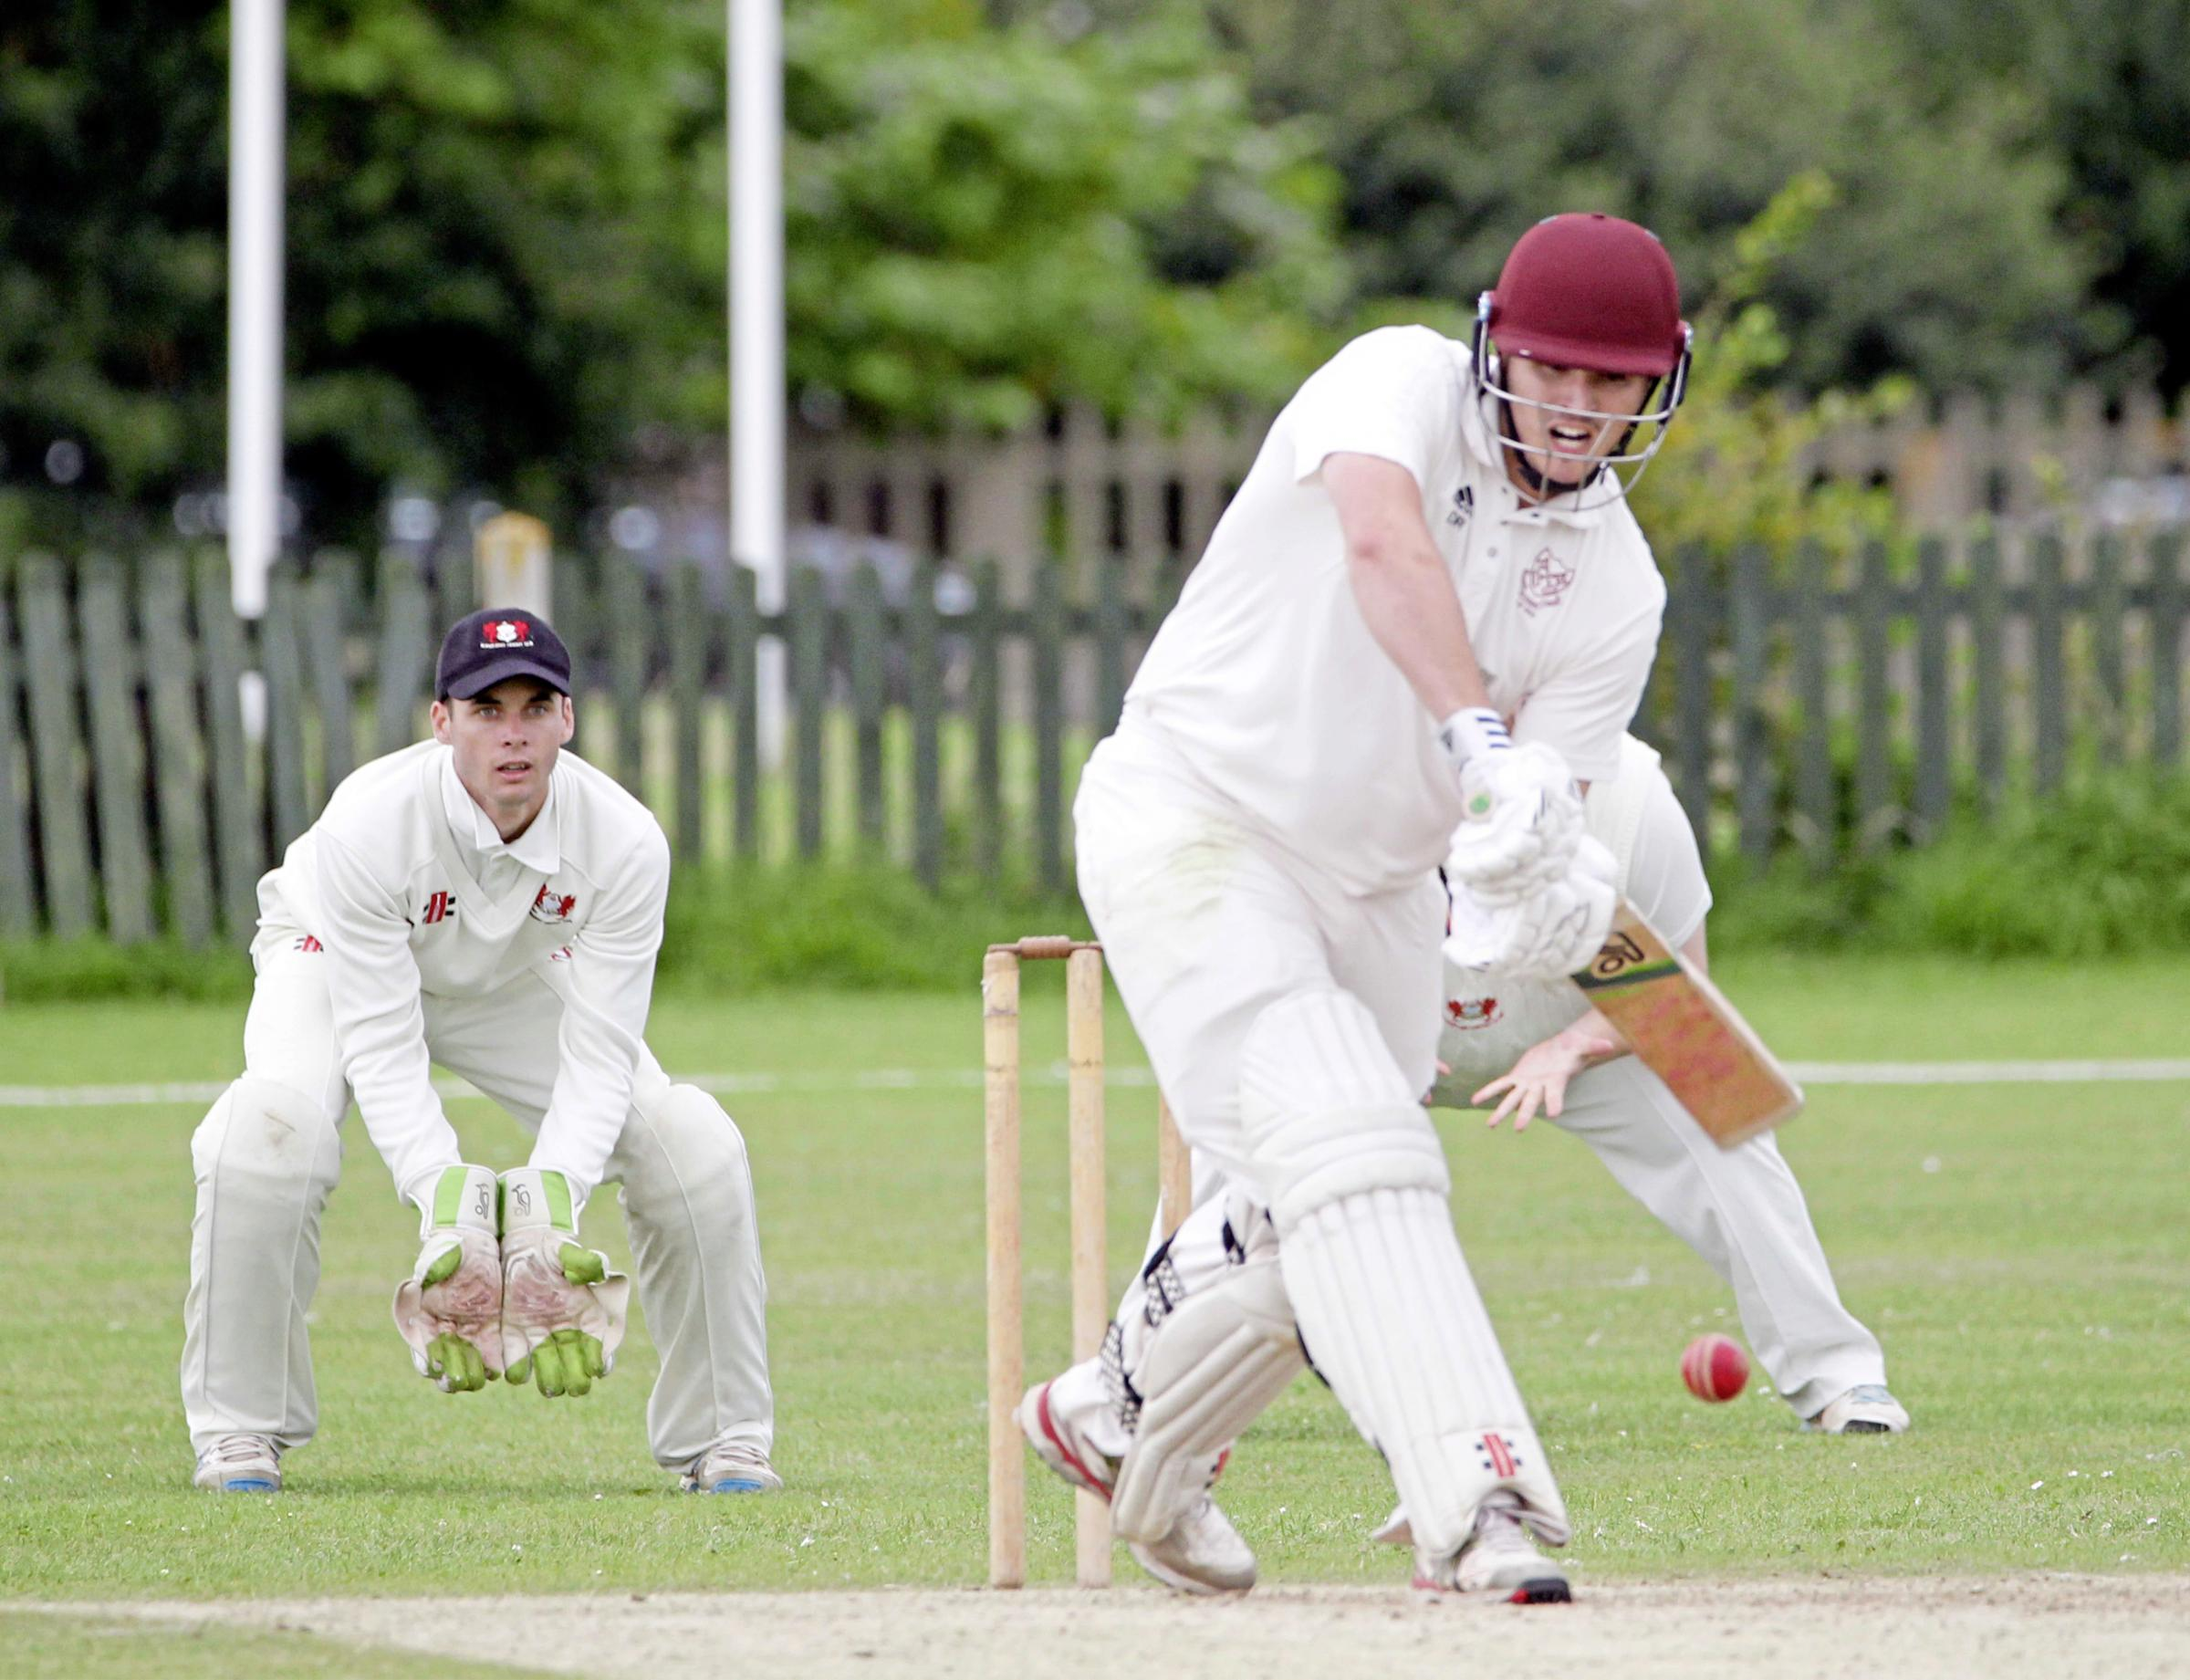 St Asaph claimed another victory on home soil